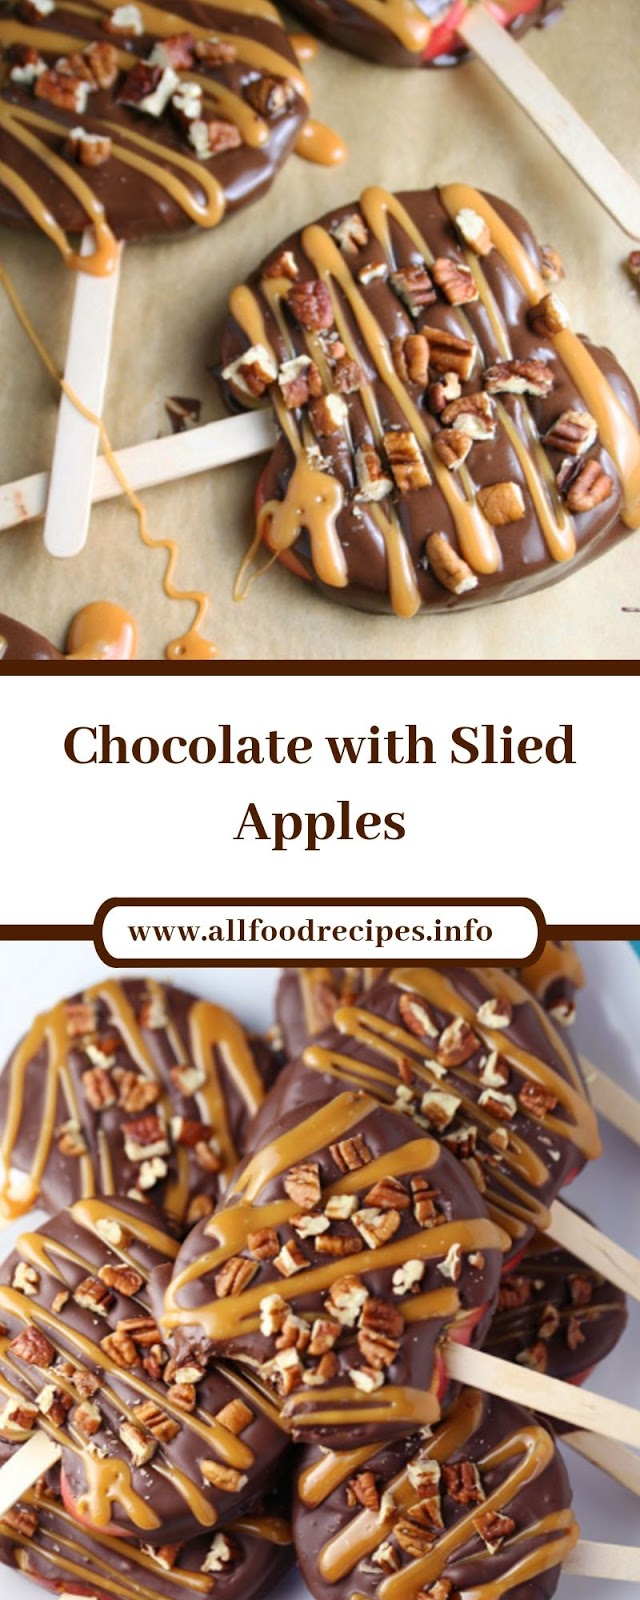 Chocolate with Slied Apples